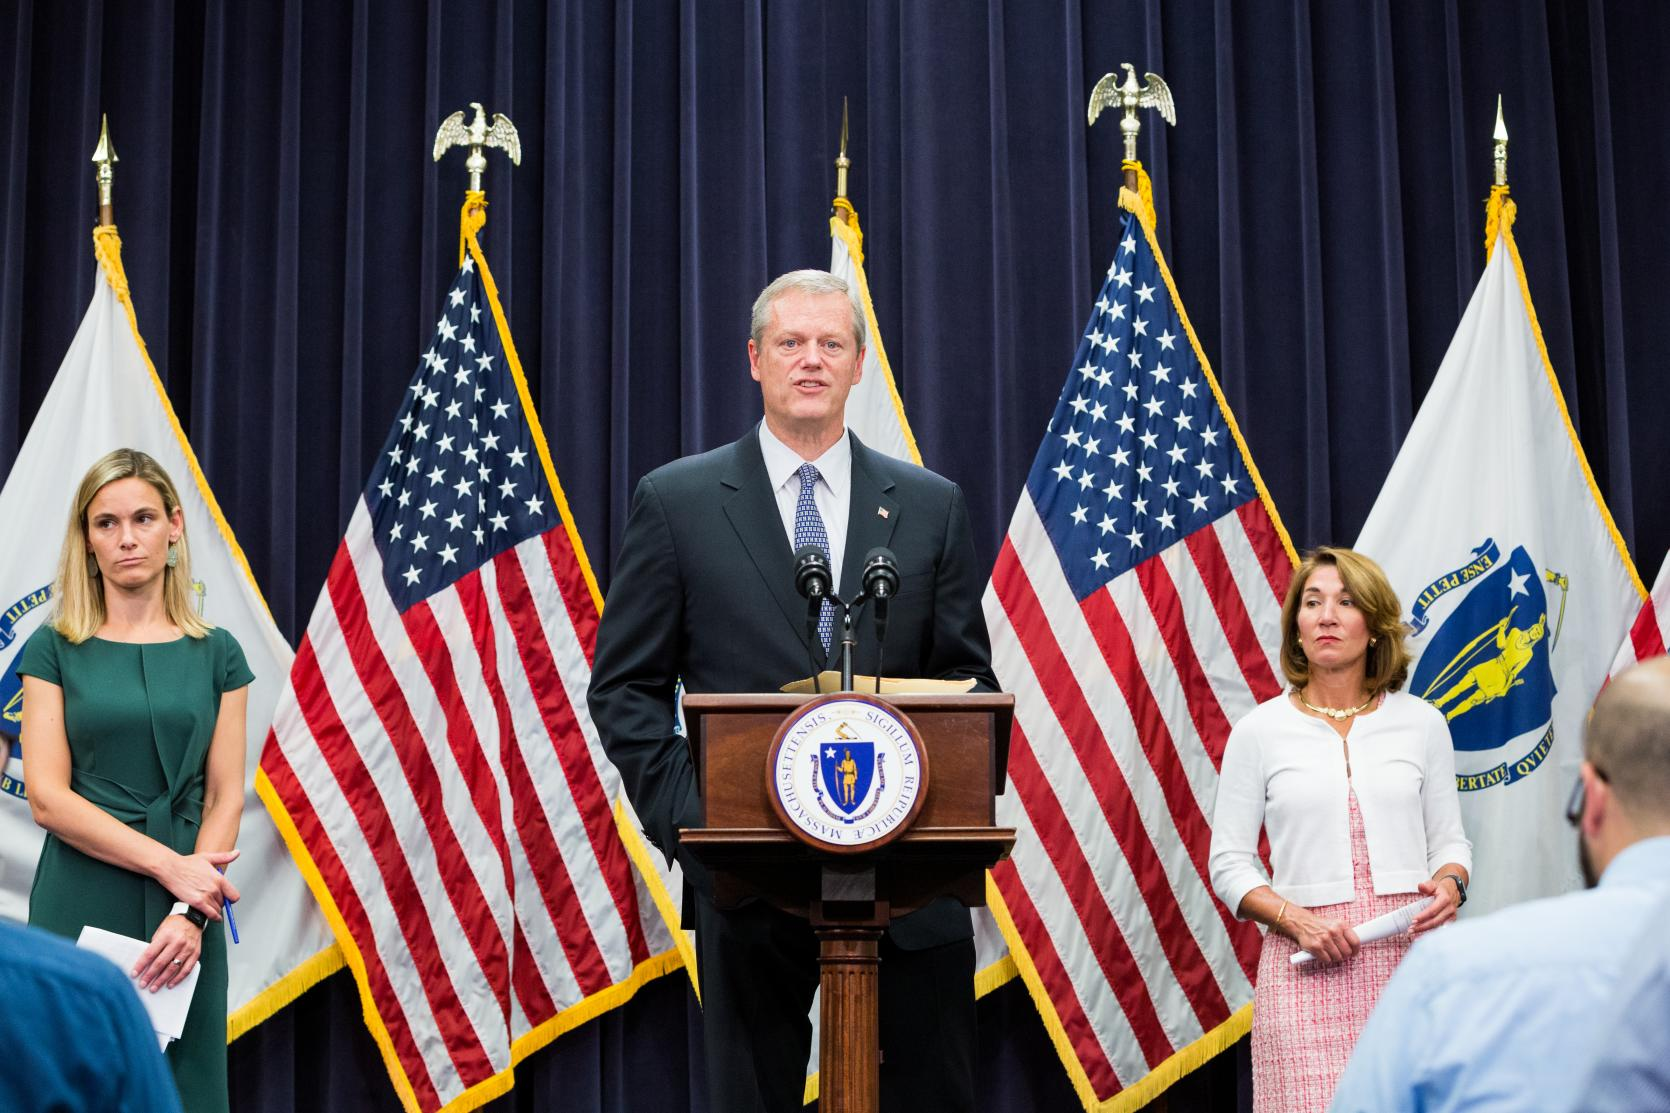 Baker-Polito Administration Files Legislation Strengthening Public Safety Requirements for Transportation Network Companies